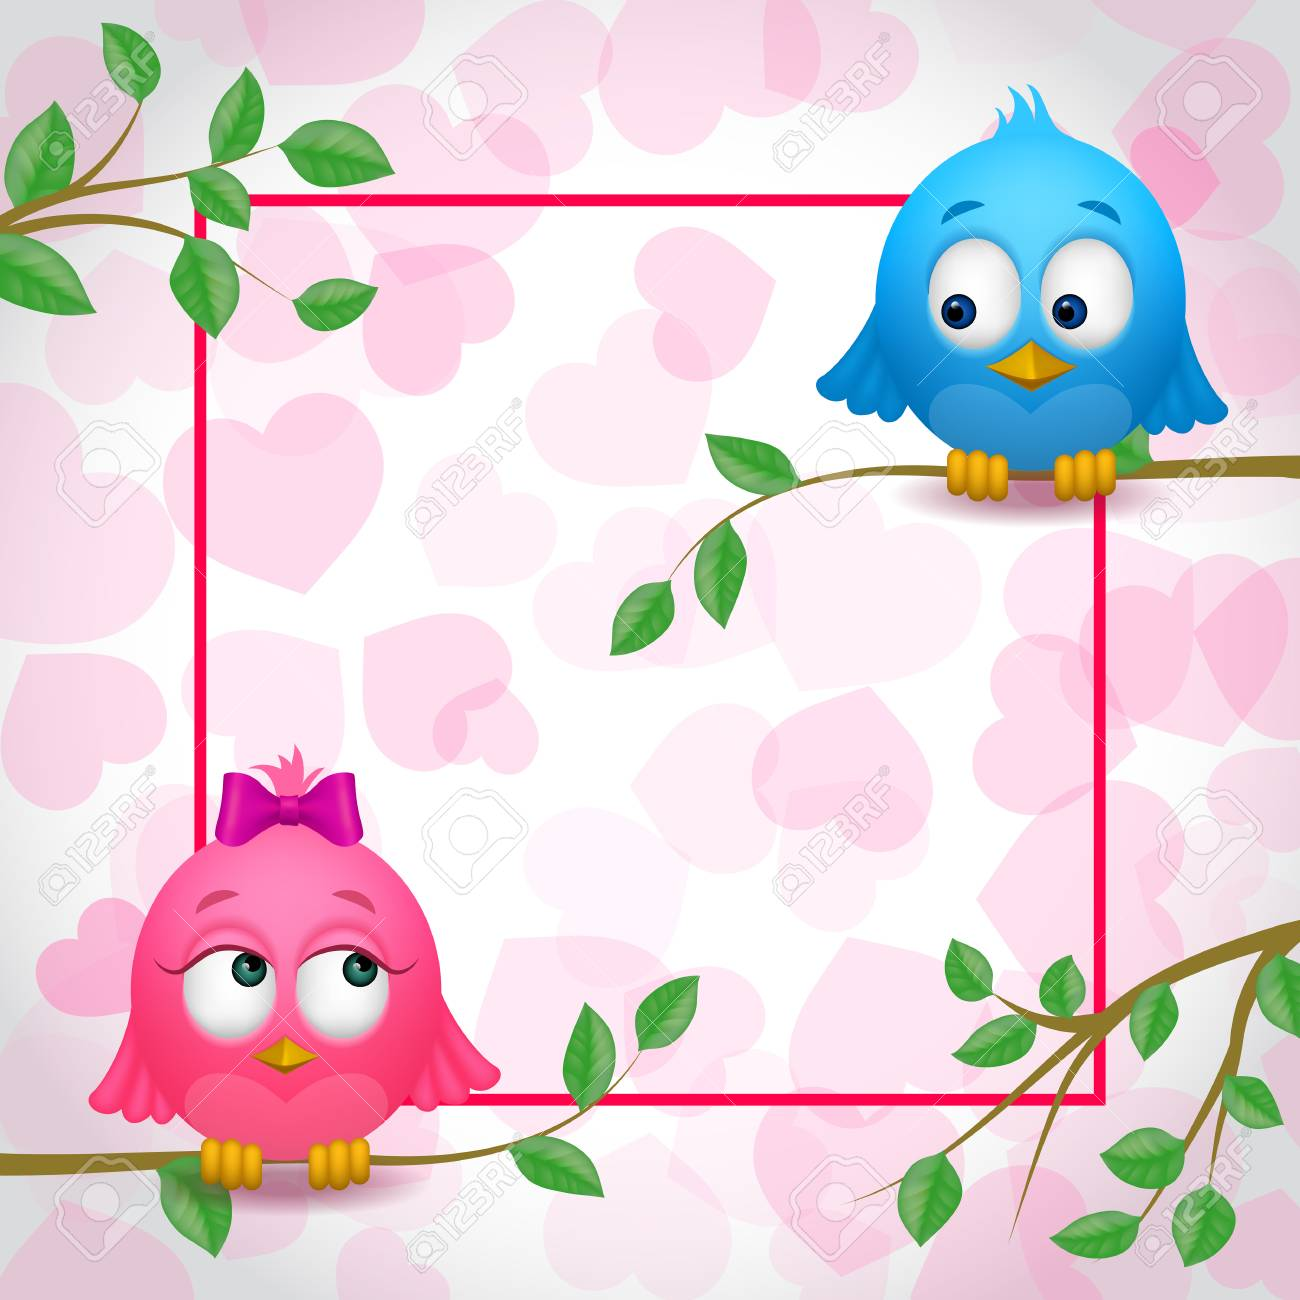 Cute Birds Couple In Love And Frame Royalty Free Cliparts, Vectors ...